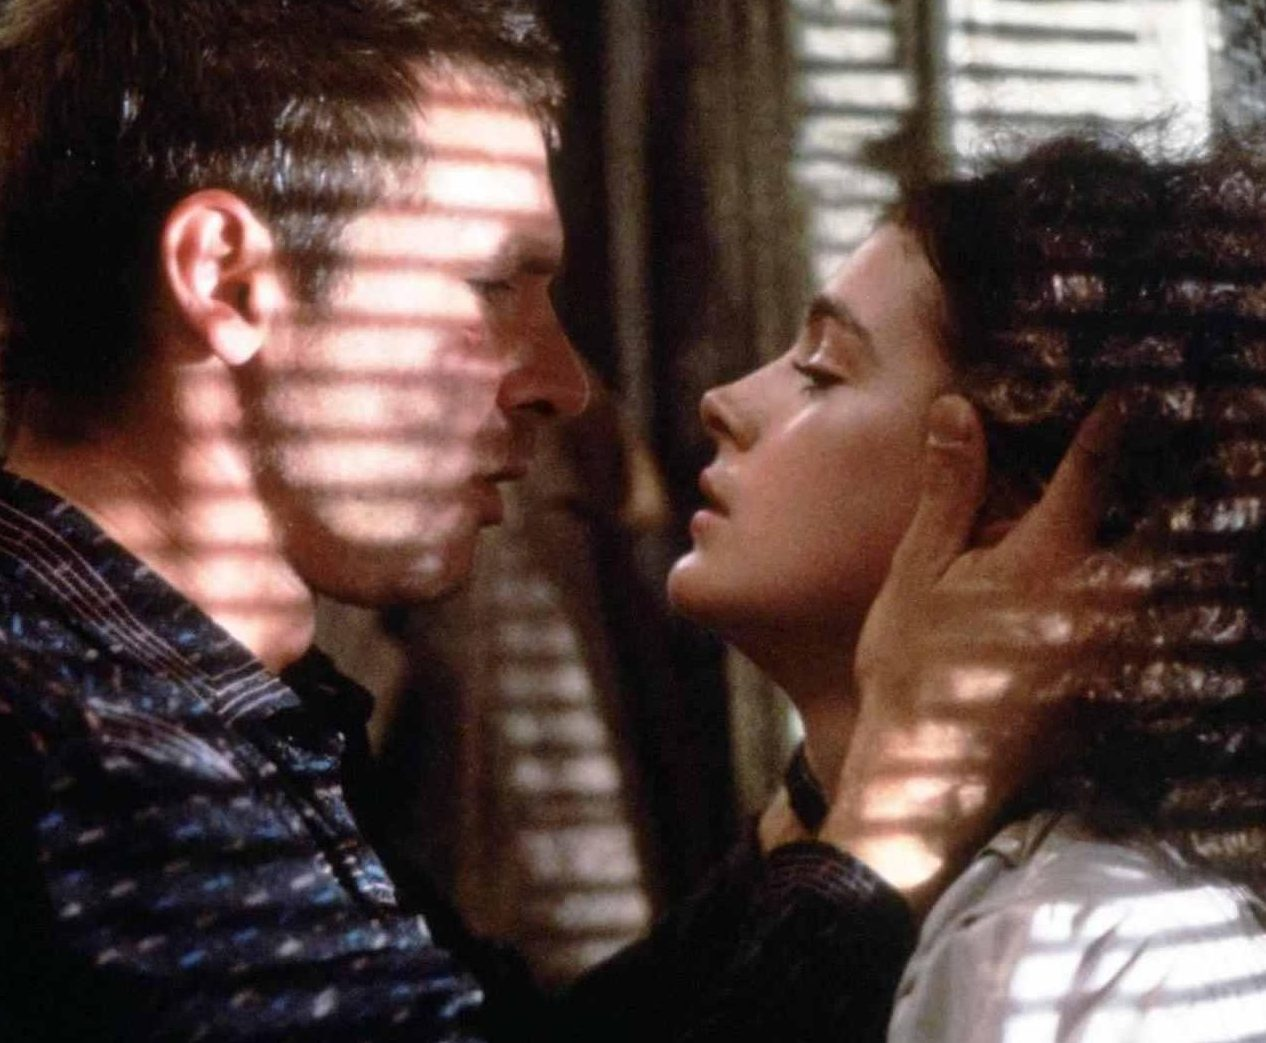 Blade Runner 1982 Deckard Harrison Ford and Rachael Sean Young e1597672749850 20 Great Movie Romances That Are Actually Deeply Problematic